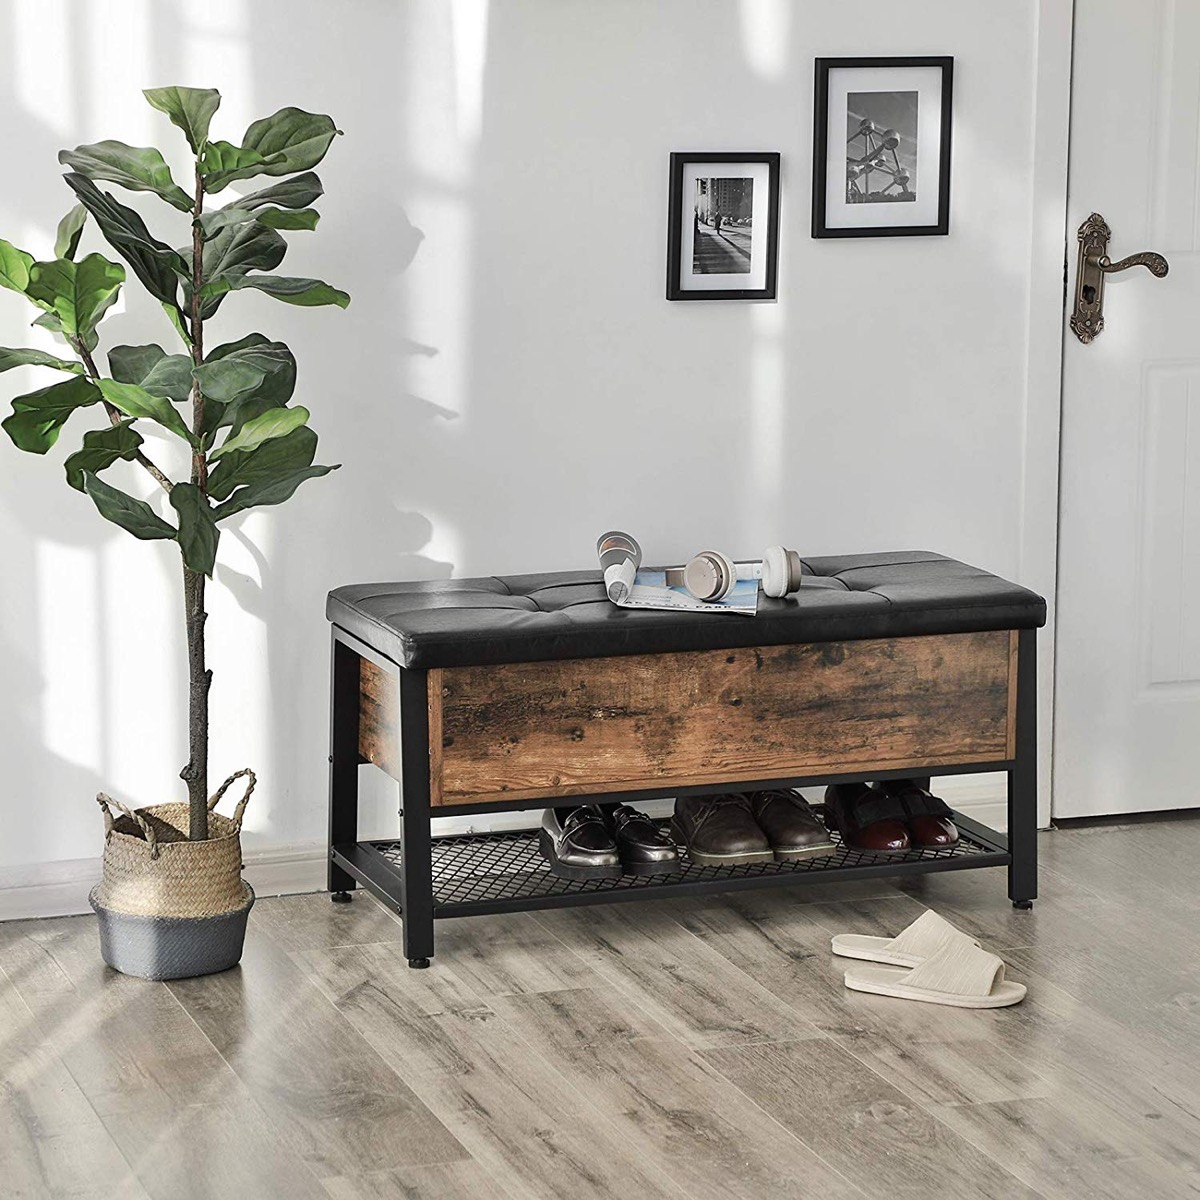 industrial-storage-bench-with-faux-leather-top-weathered-wood-sides-and-metal-grate-bottom-shelf